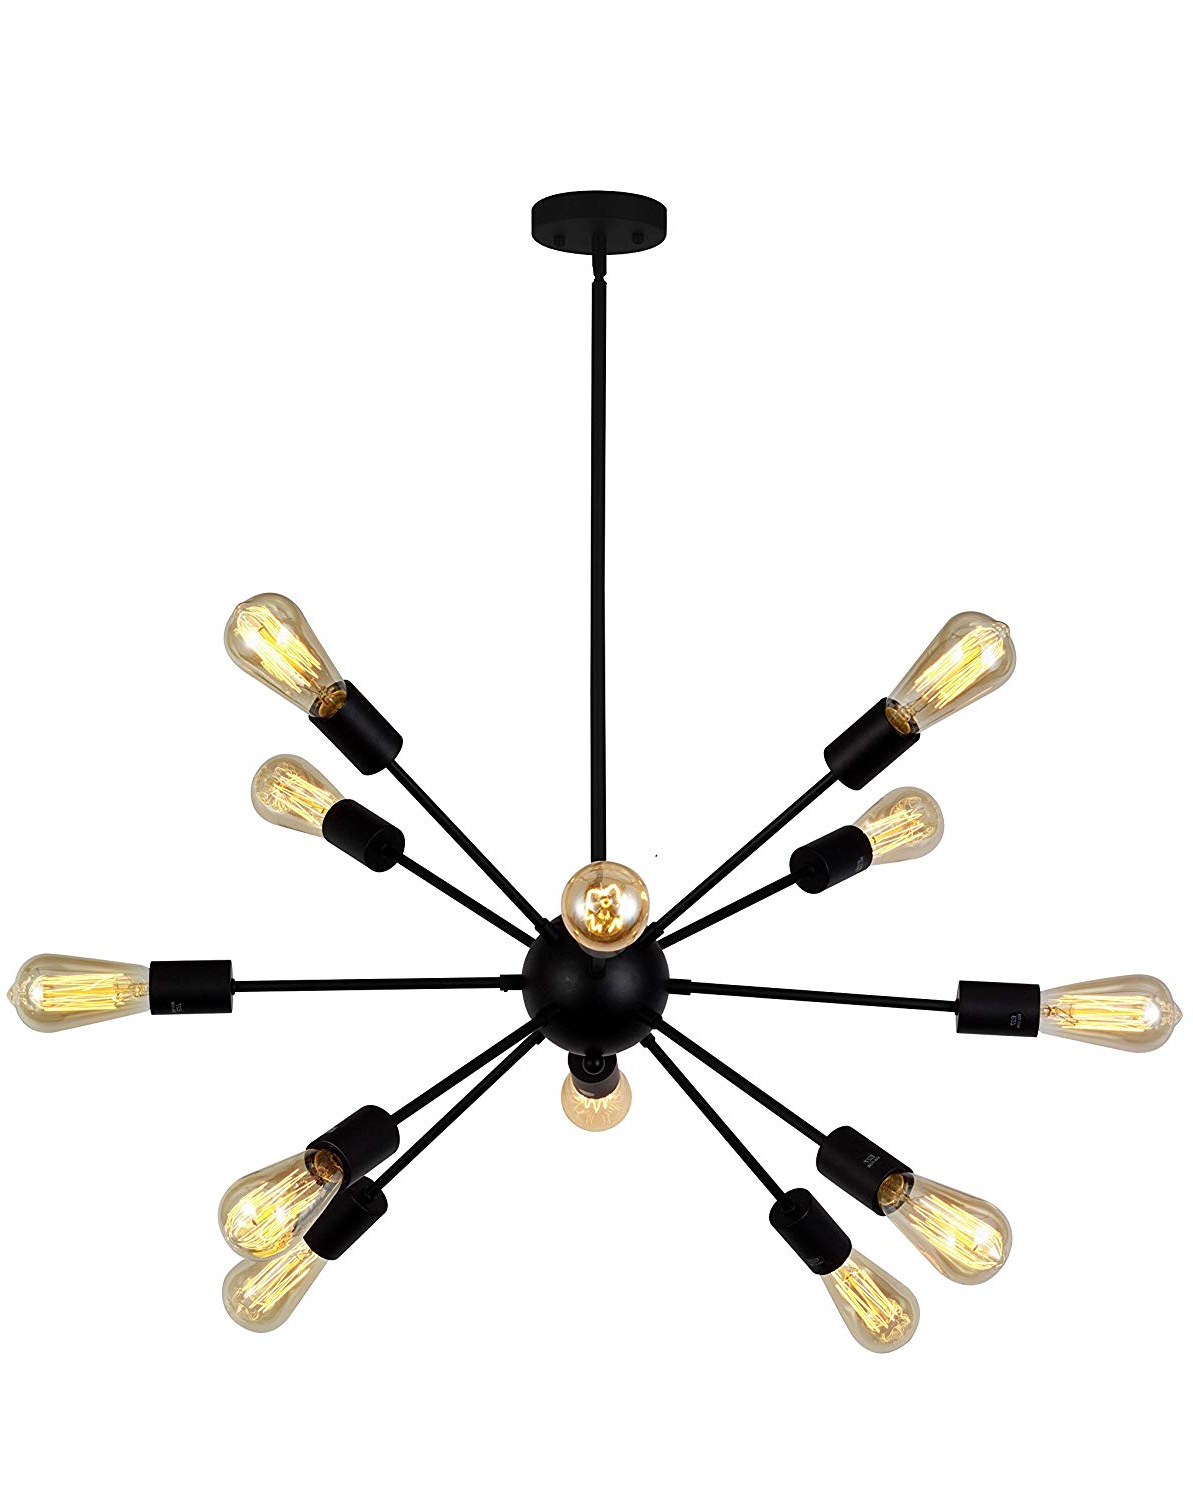 Most Recently Released Nelly 12 Light Sputnik Chandeliers Intended For Vinluz 12 Light Contemporary Sputnik Chandelier Black Mid Century Modern  Ceiling Light Fixtures Hanging Rustic Industrial Pendant Lighting For  Kitchen (View 12 of 25)